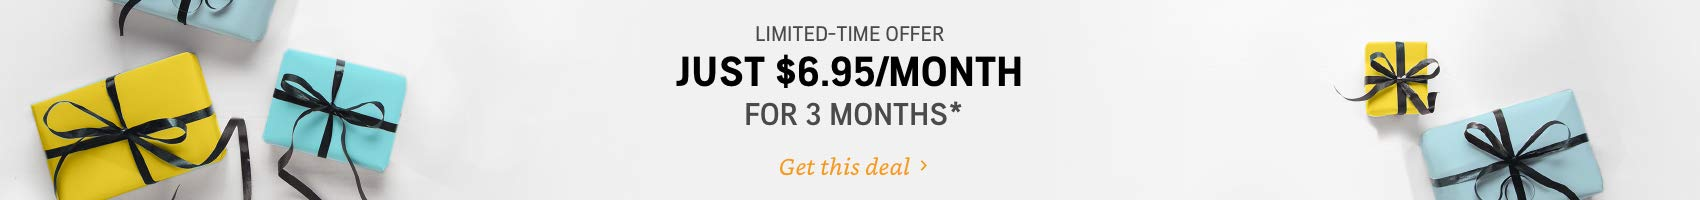 Limited-Time Offer Just $6.95/month for 3 months. Enjoy an unbeatable selection and save more than 53%.